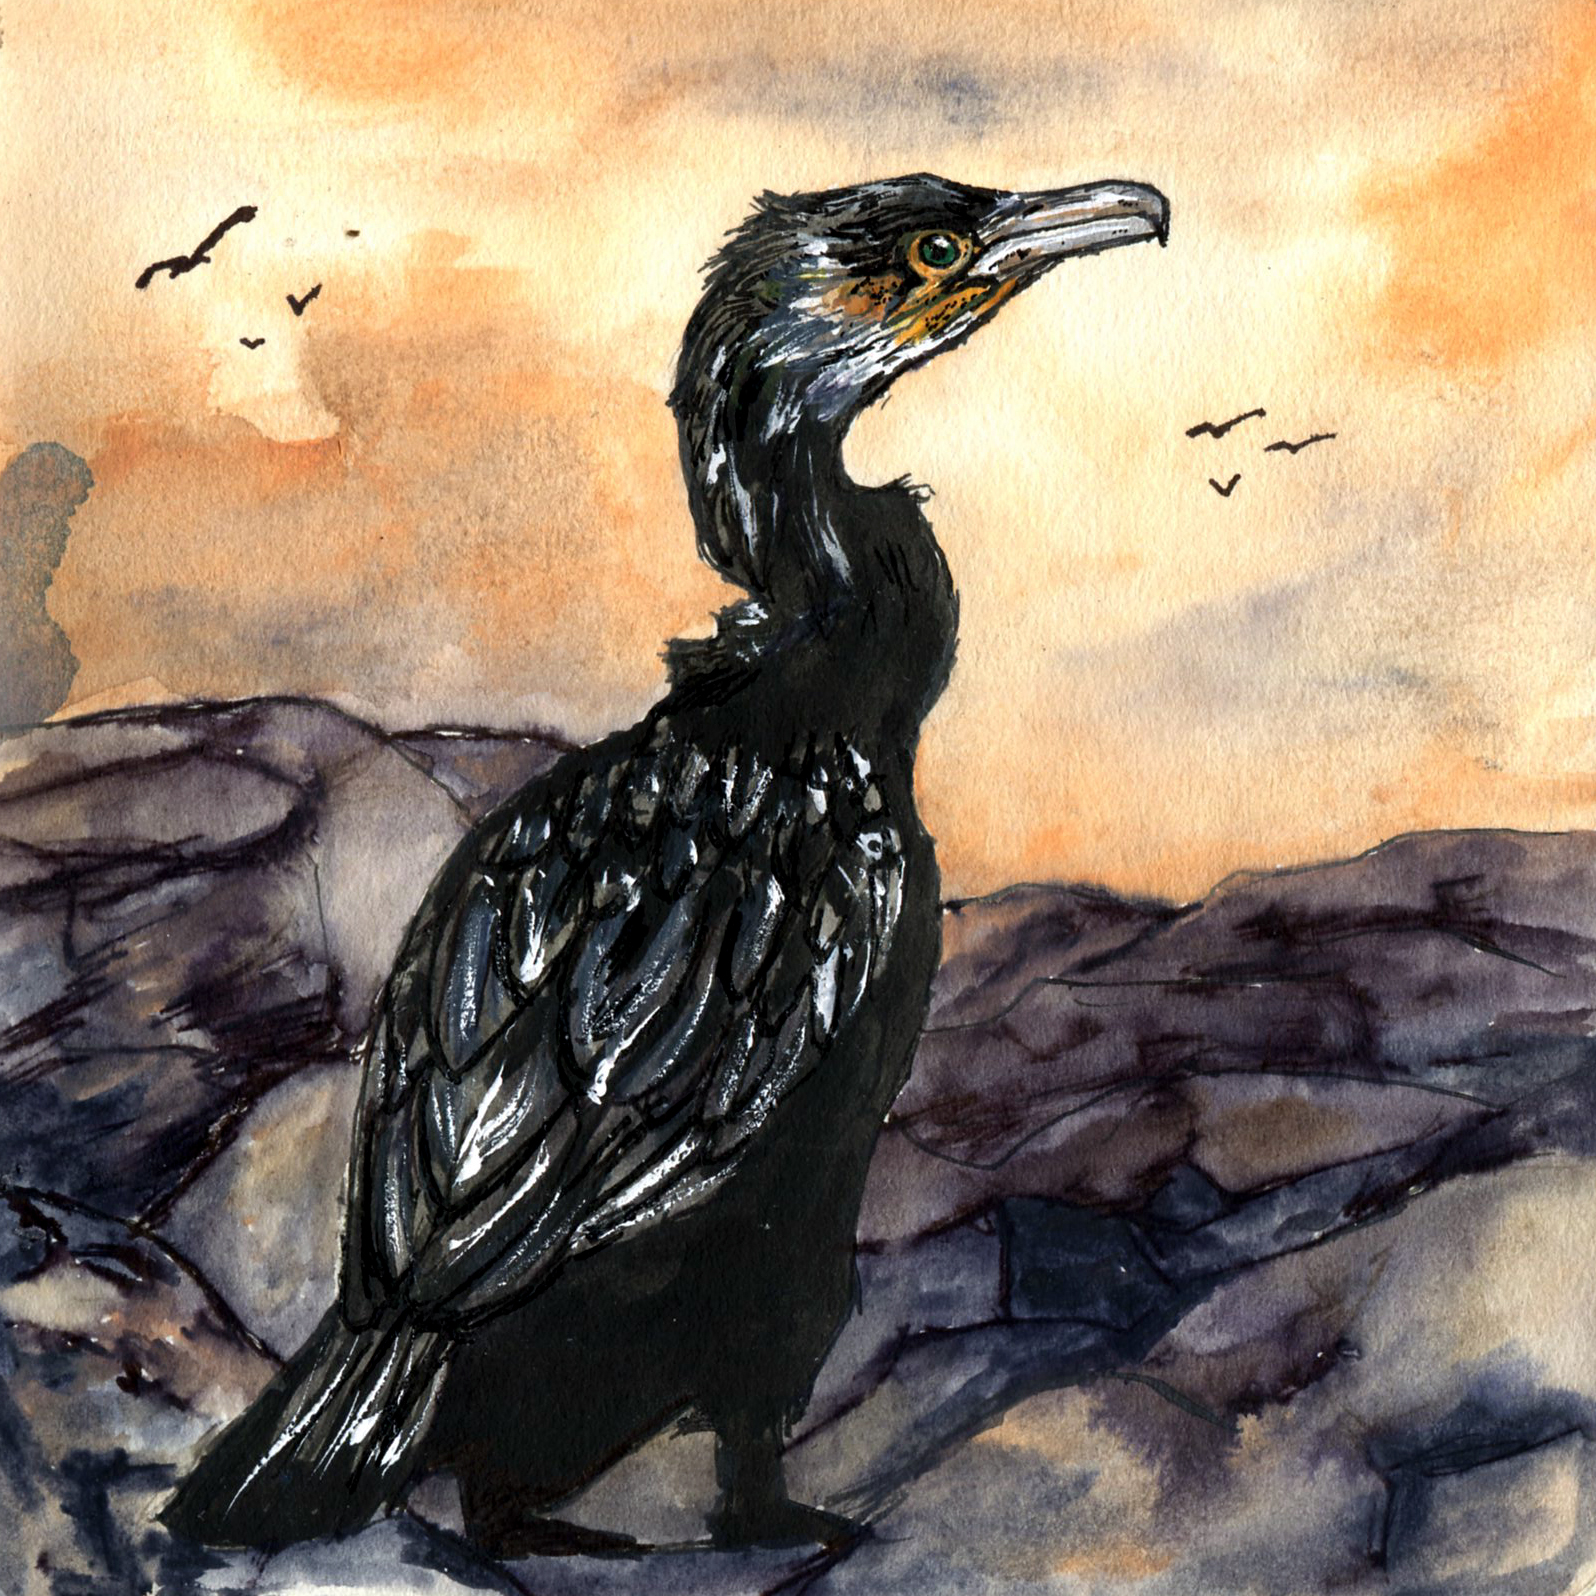 110. Great Cormorant